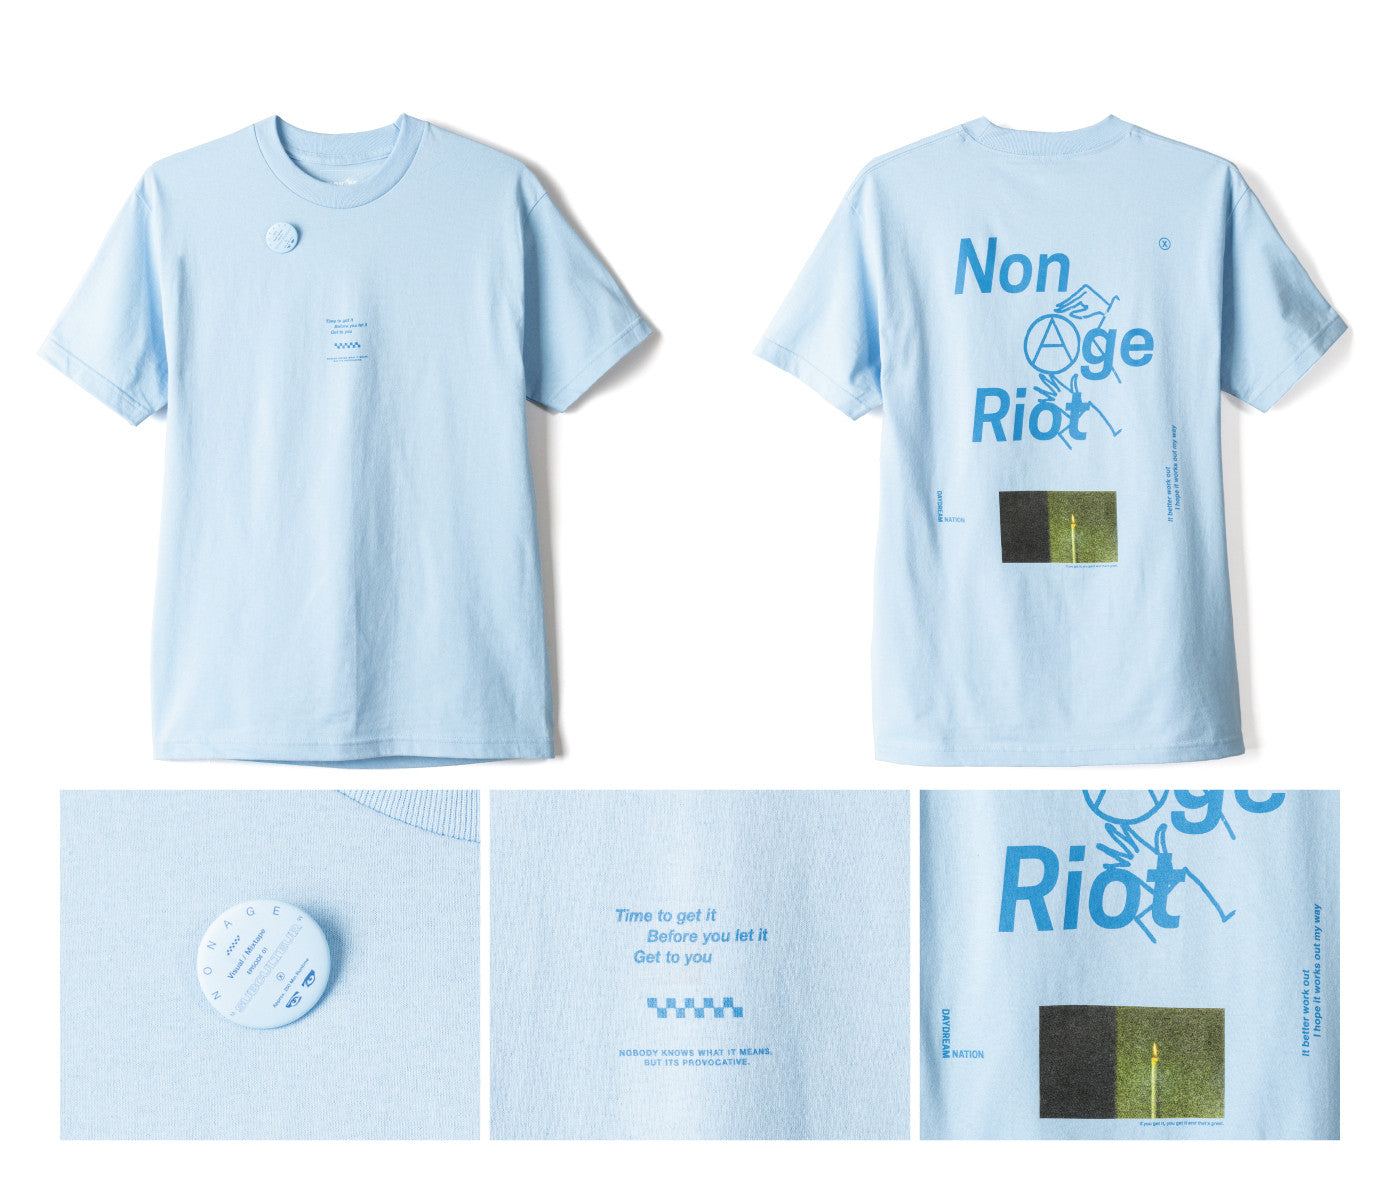 NONAGE Episode 1 'SONIC' Tee